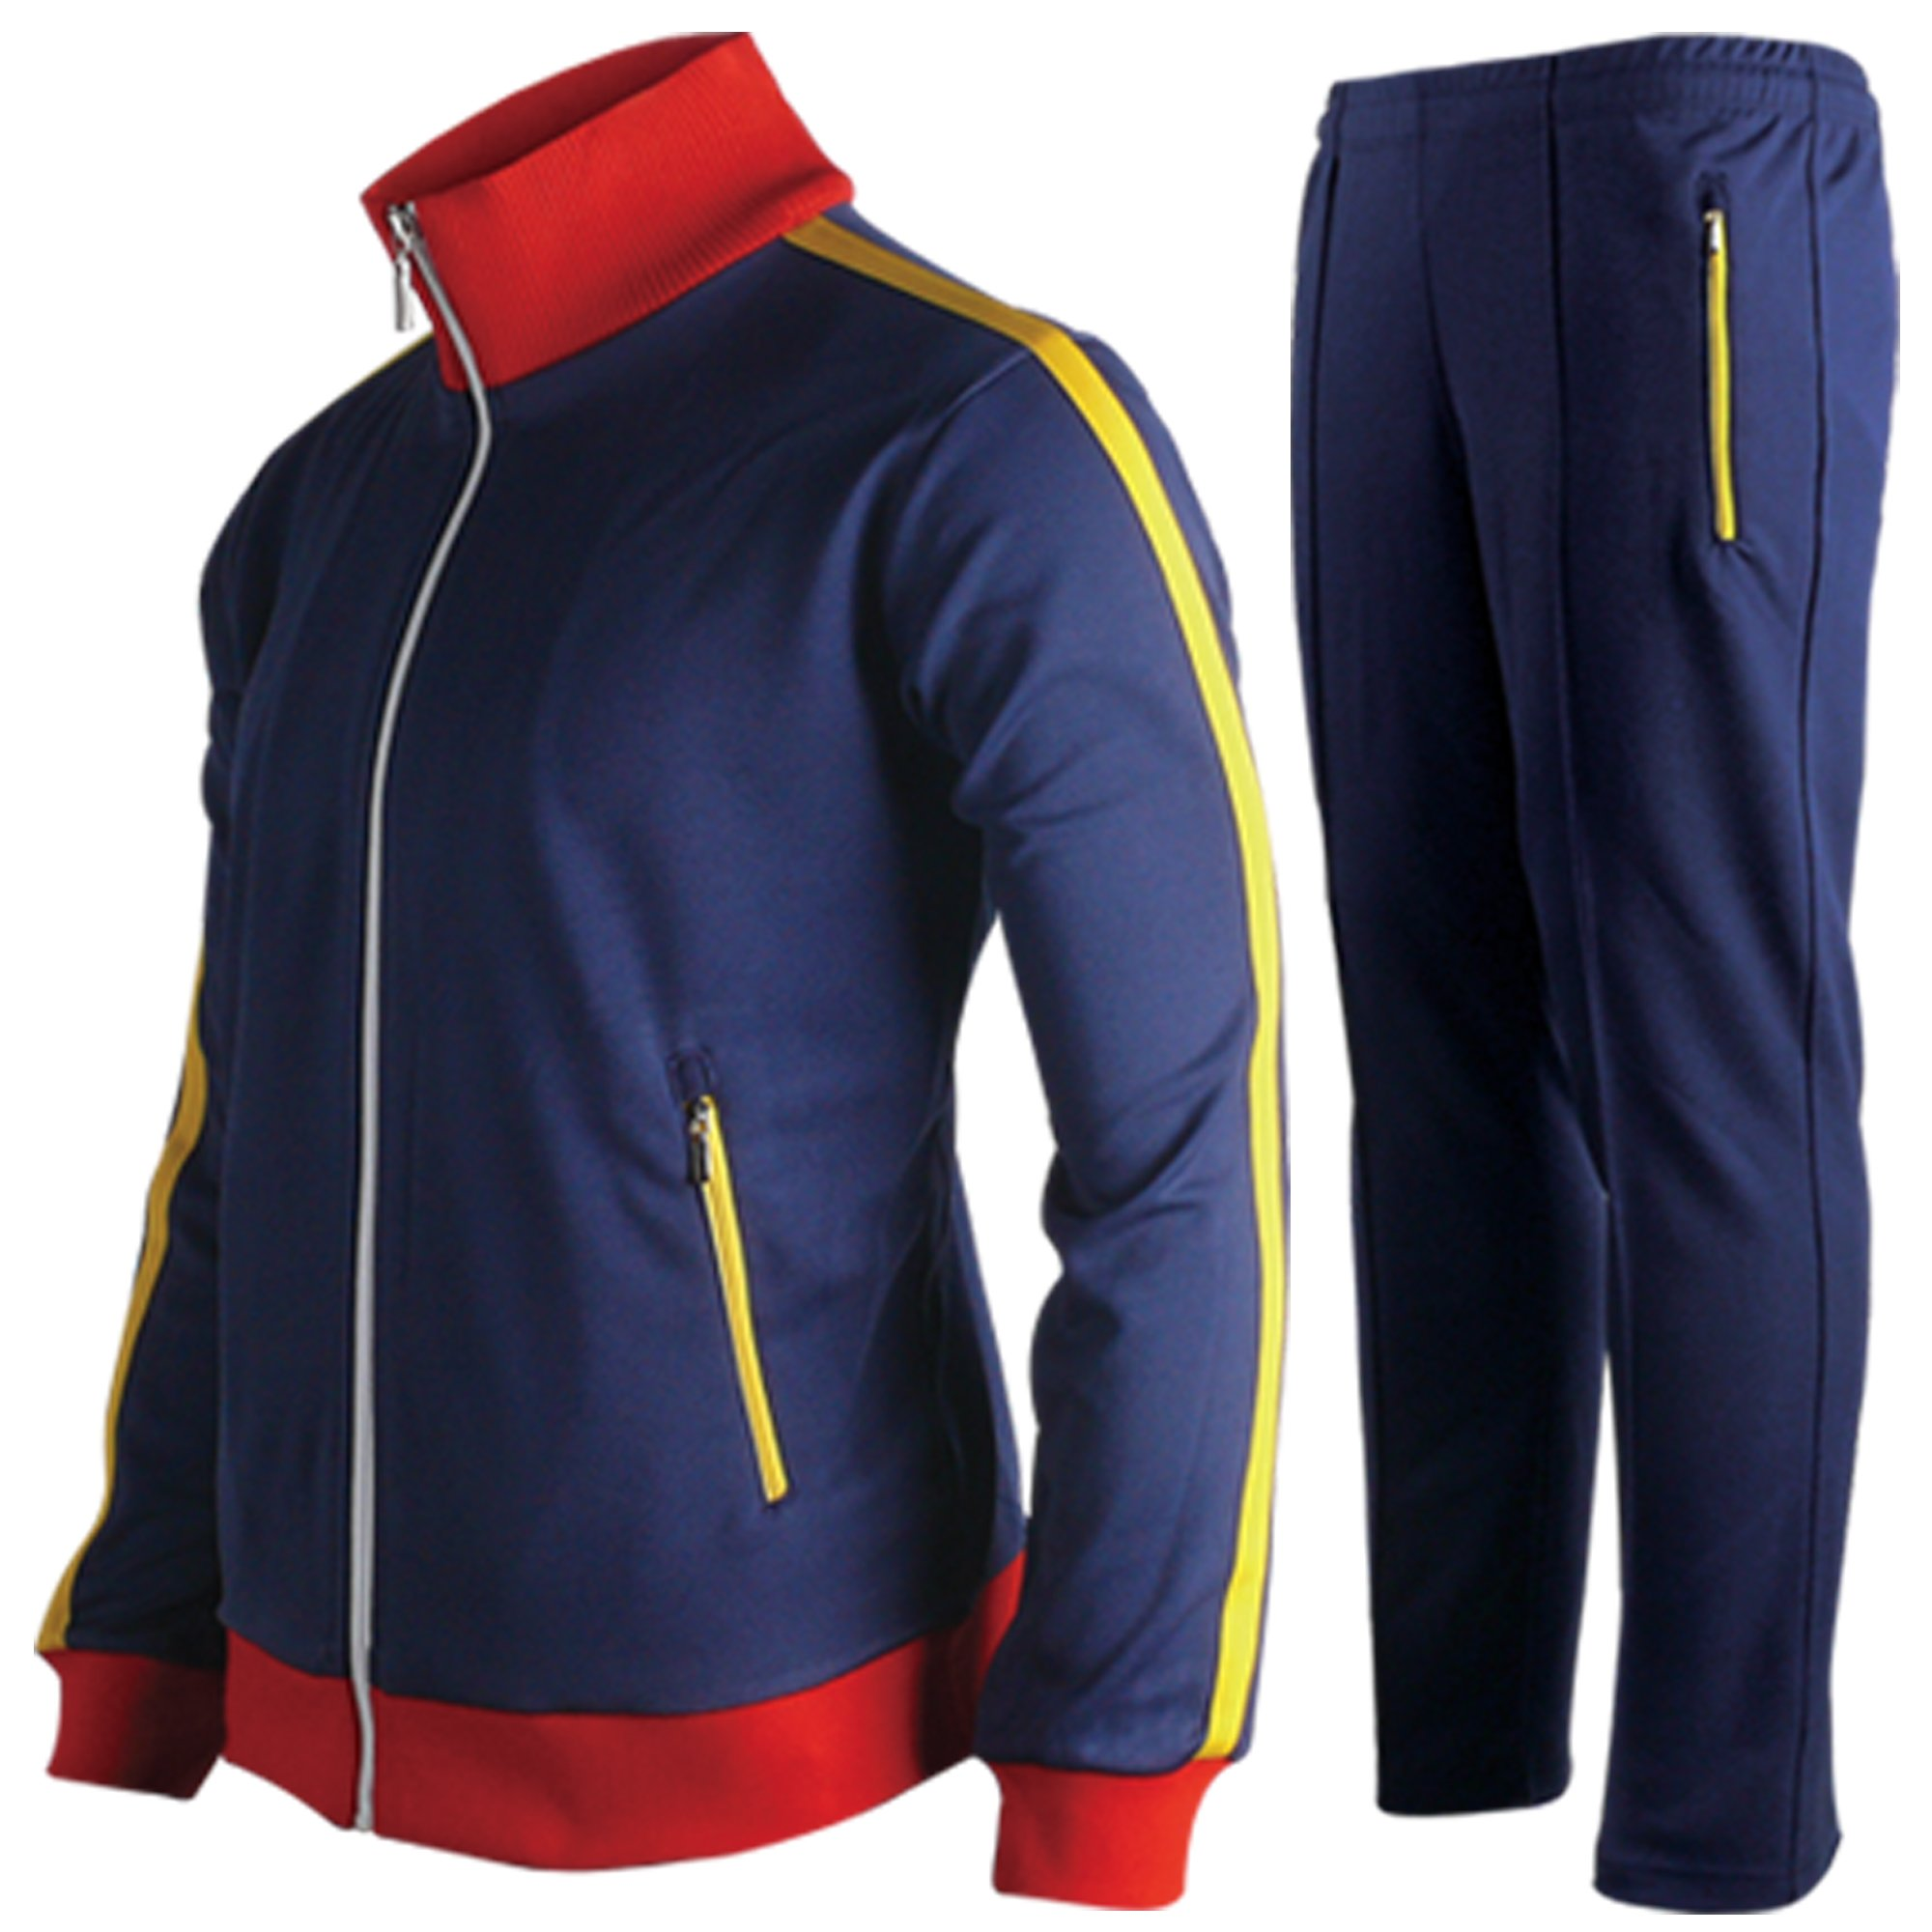 myglory77mall Running Jogging Track Suit Jacket and Pants Warm up Gym Training Wear NavyRed XXS US(S Asian)